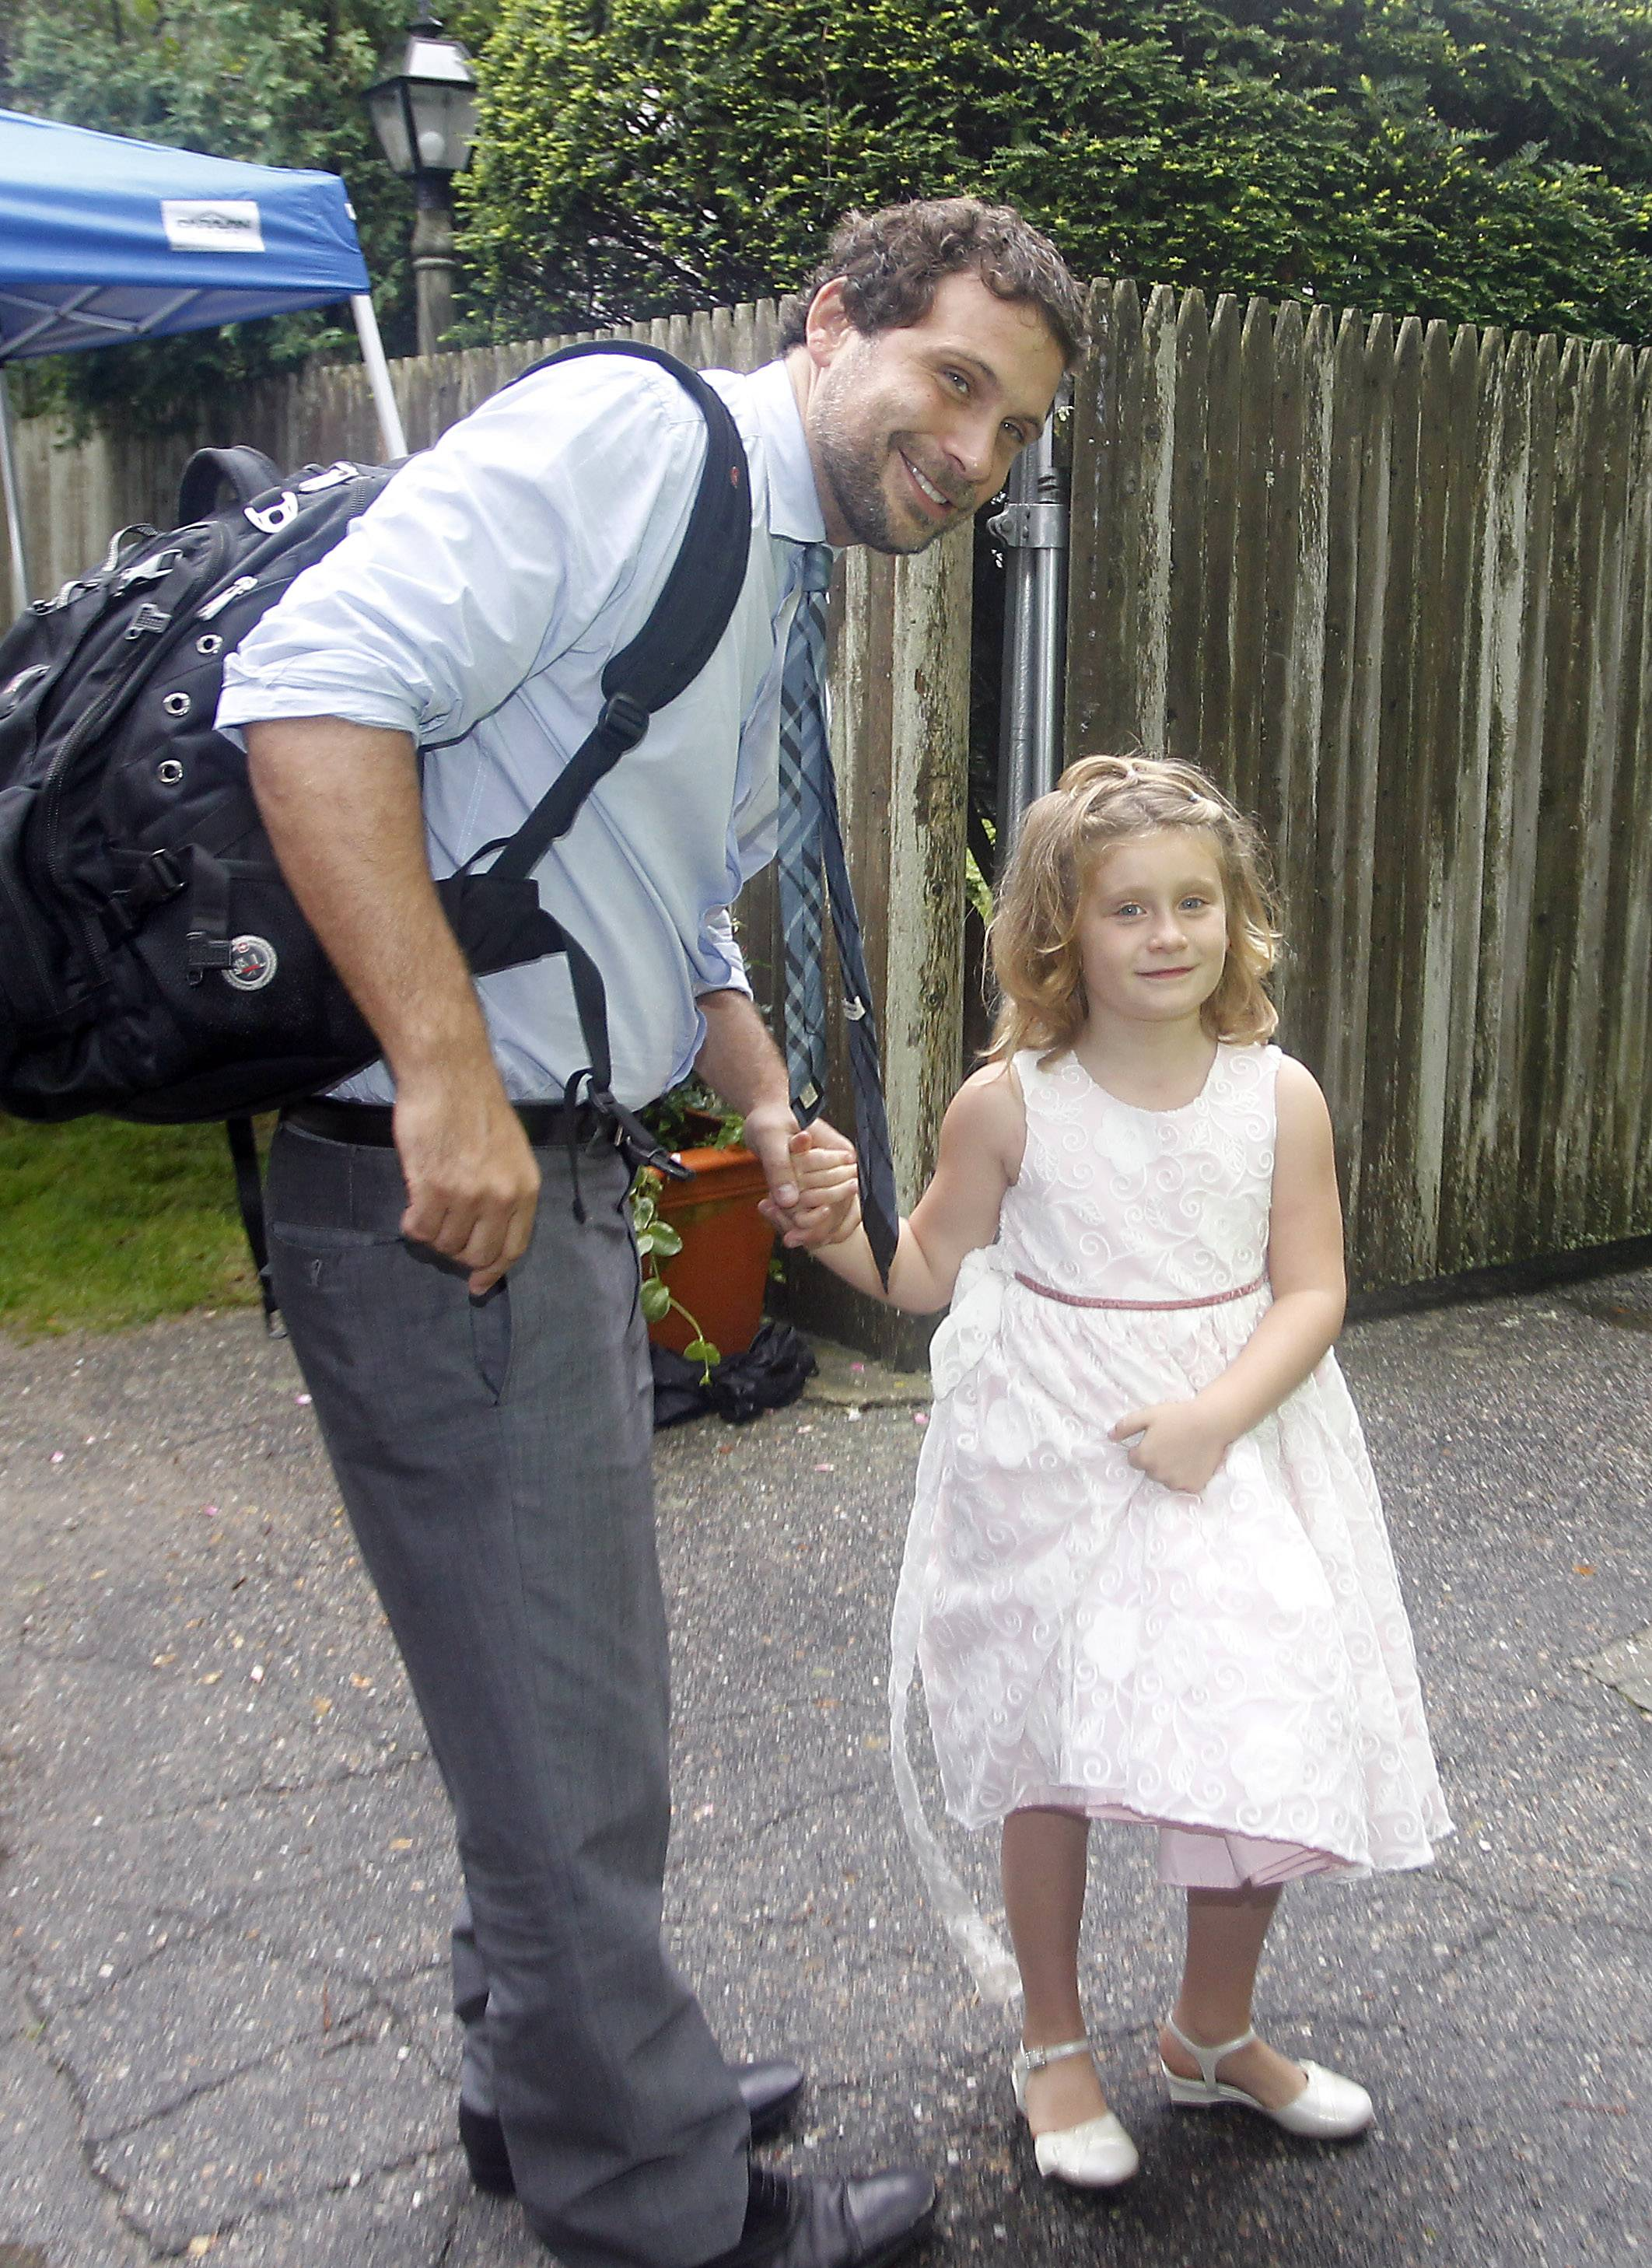 """Suburgatory"" actor Jeremy Sisto arrives with his daughter, Charlie Ballerina, on Saturday at the Kennedy Compound in Hyannis Port, Mass. for the wedding of Robert F. Kennedy Jr., and actress Cheryl Hines."